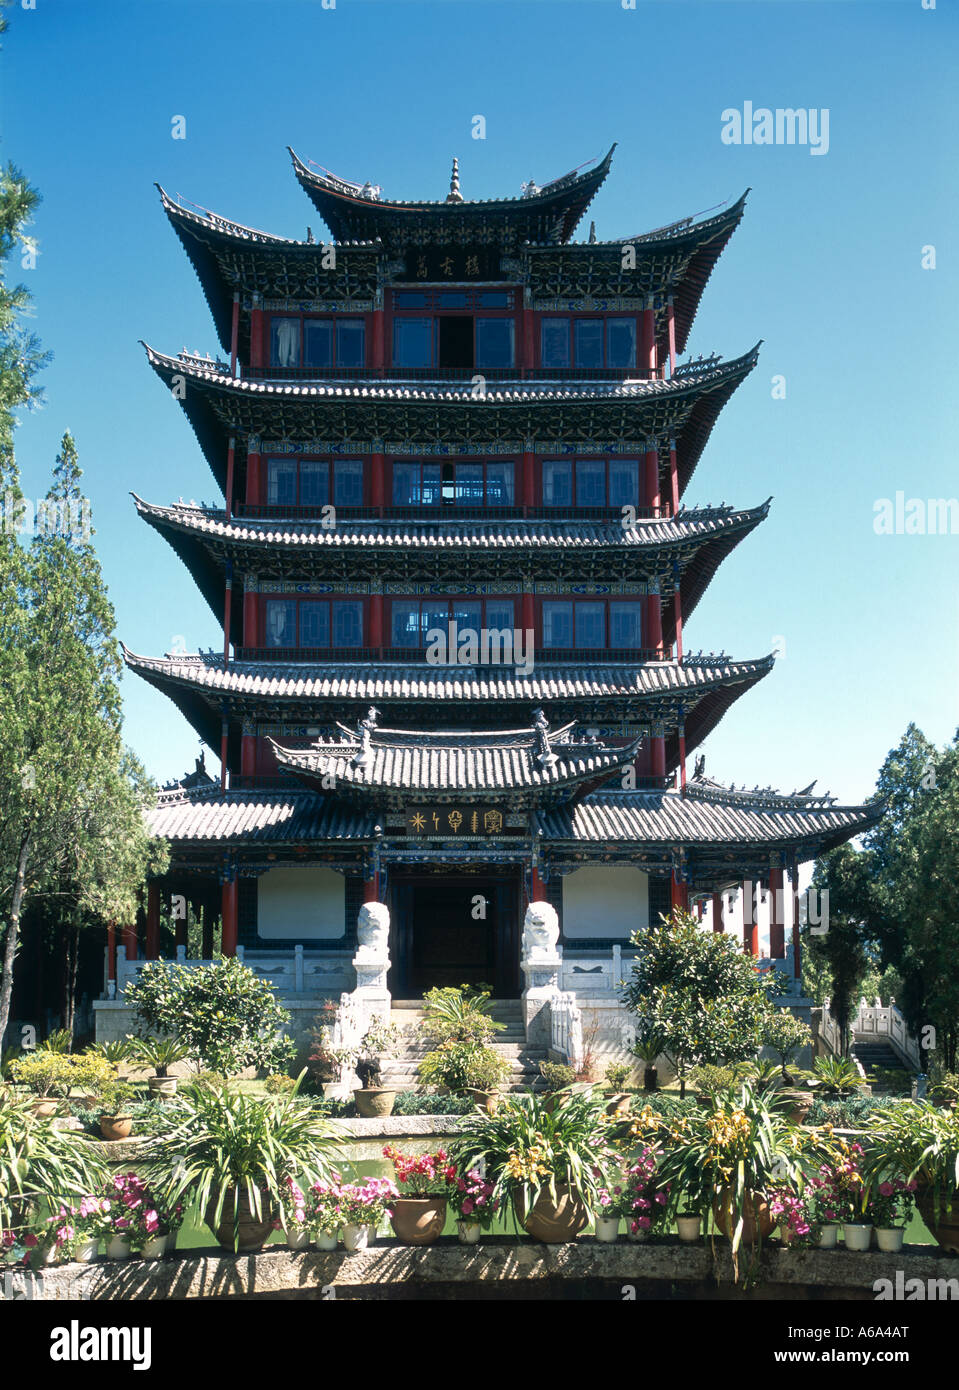 China, Lijiang, Dayan (Old Town), Wangu Lou, recently-built, four-story edifice of 33-meter pavilion with huge wooden - Stock Image